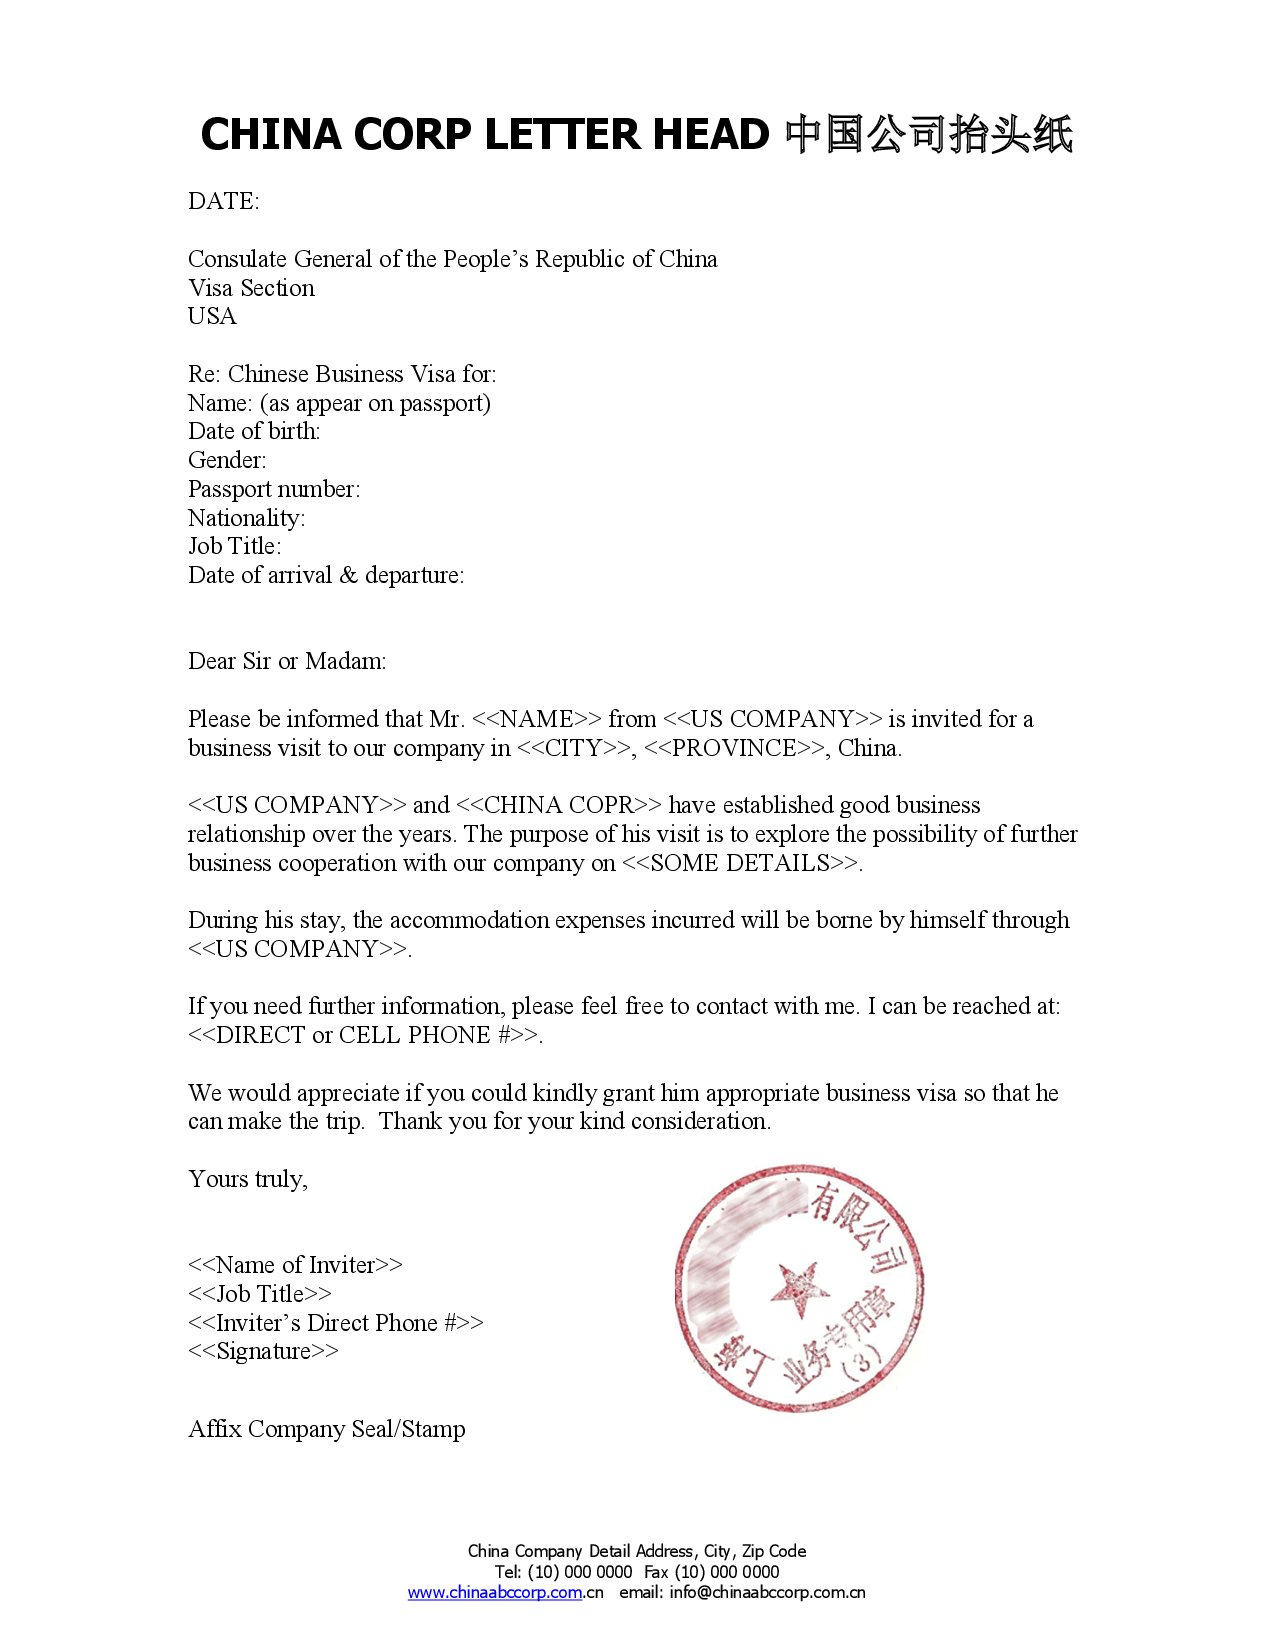 Format invitation letter for business visa to china for Consul templates